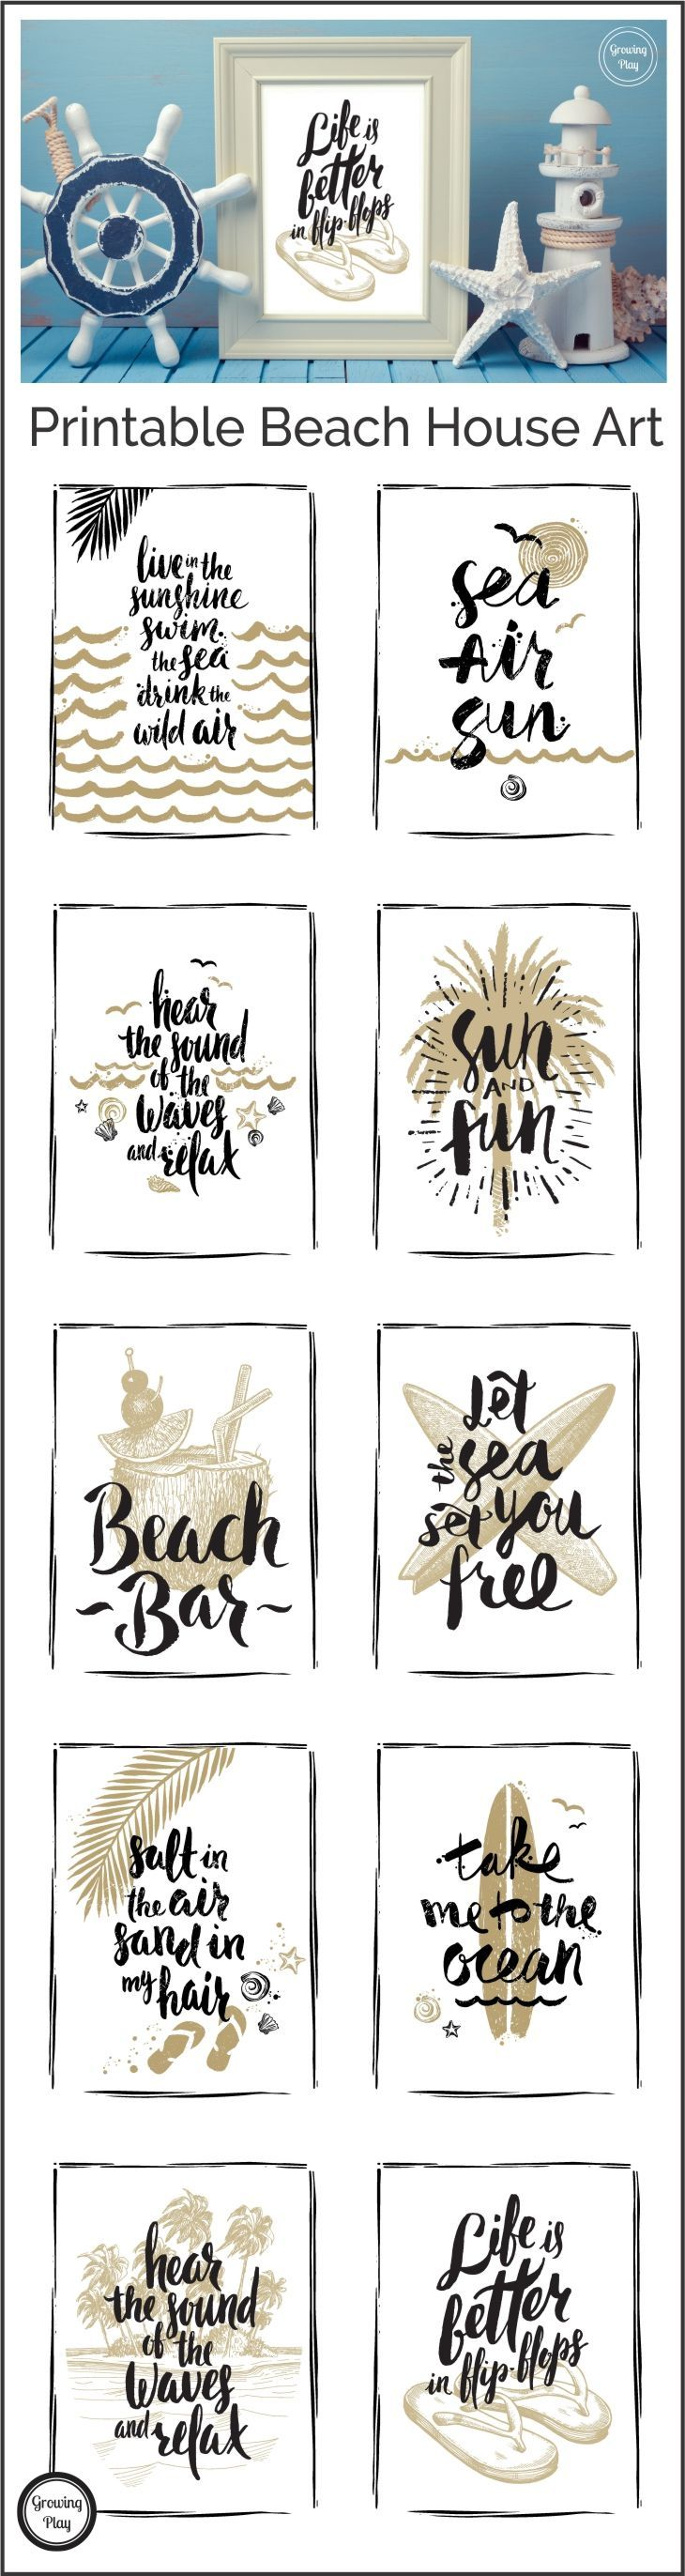 Life is Better in Flip Flops - free beach art print to download for your beach house decor, home decor or office. Let your mind wander back to the beach.